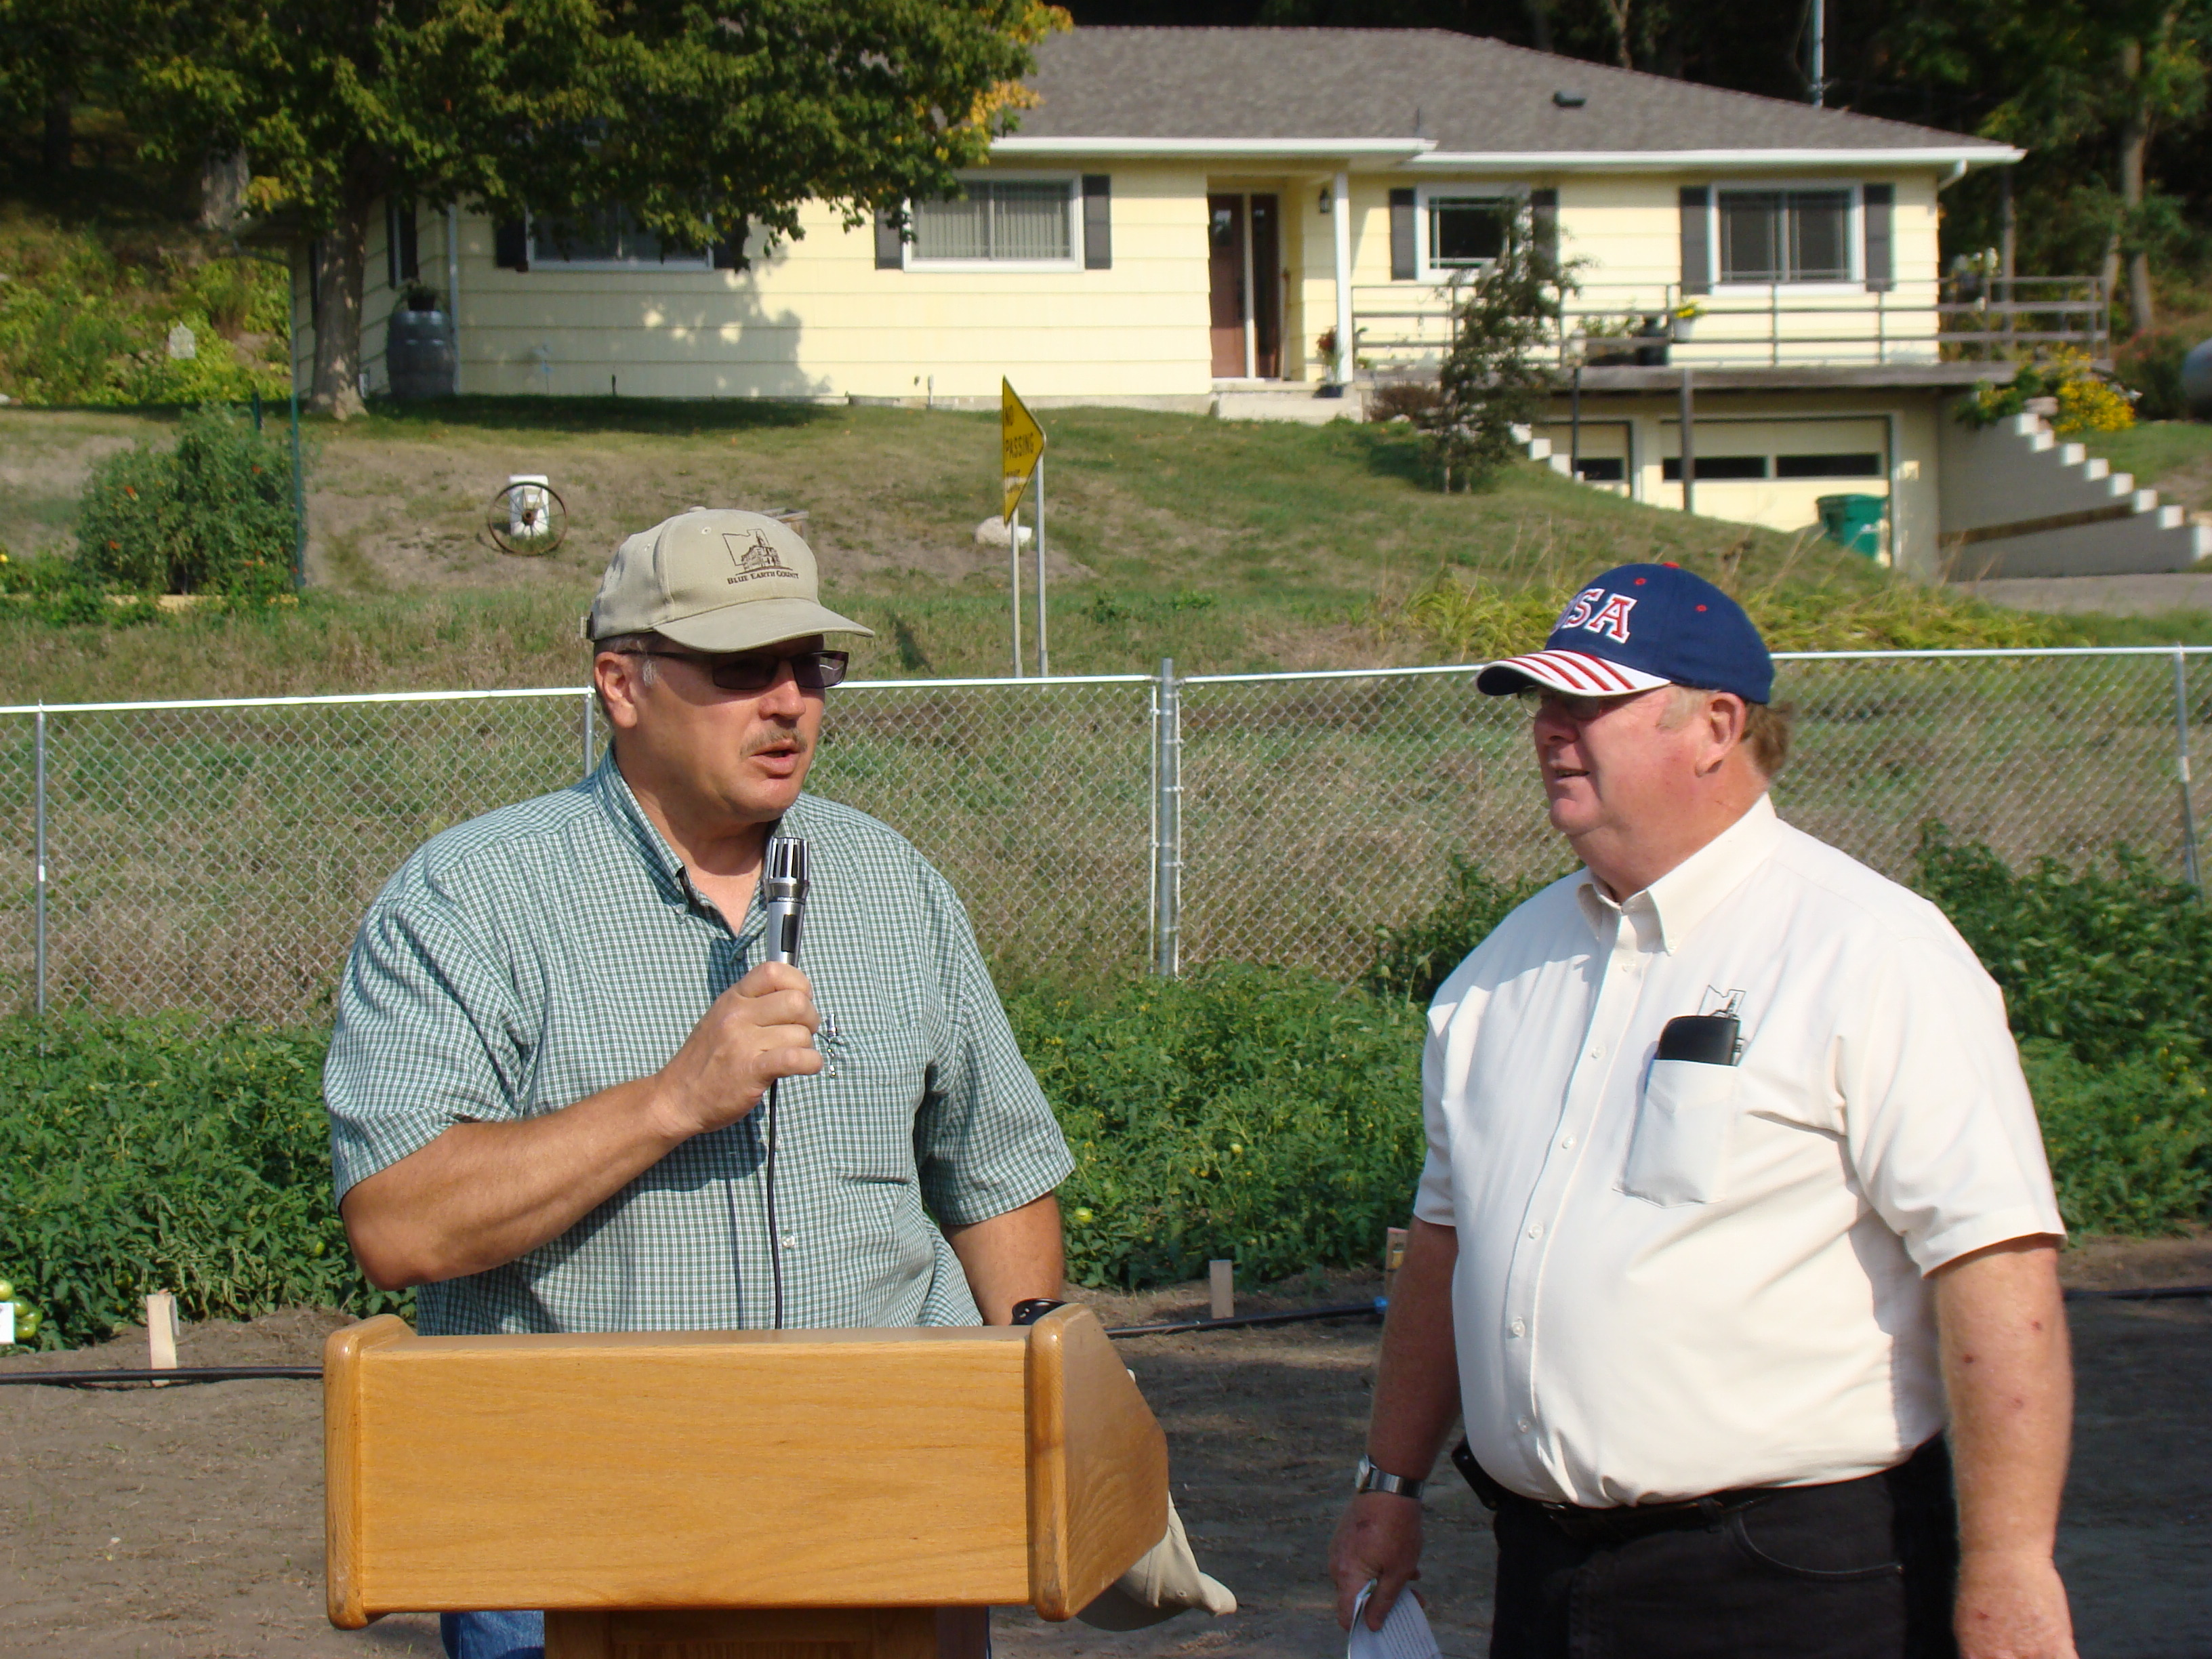 Commissioners Vance Stuehrenberg and Will Purvis speaking at the Community Farm